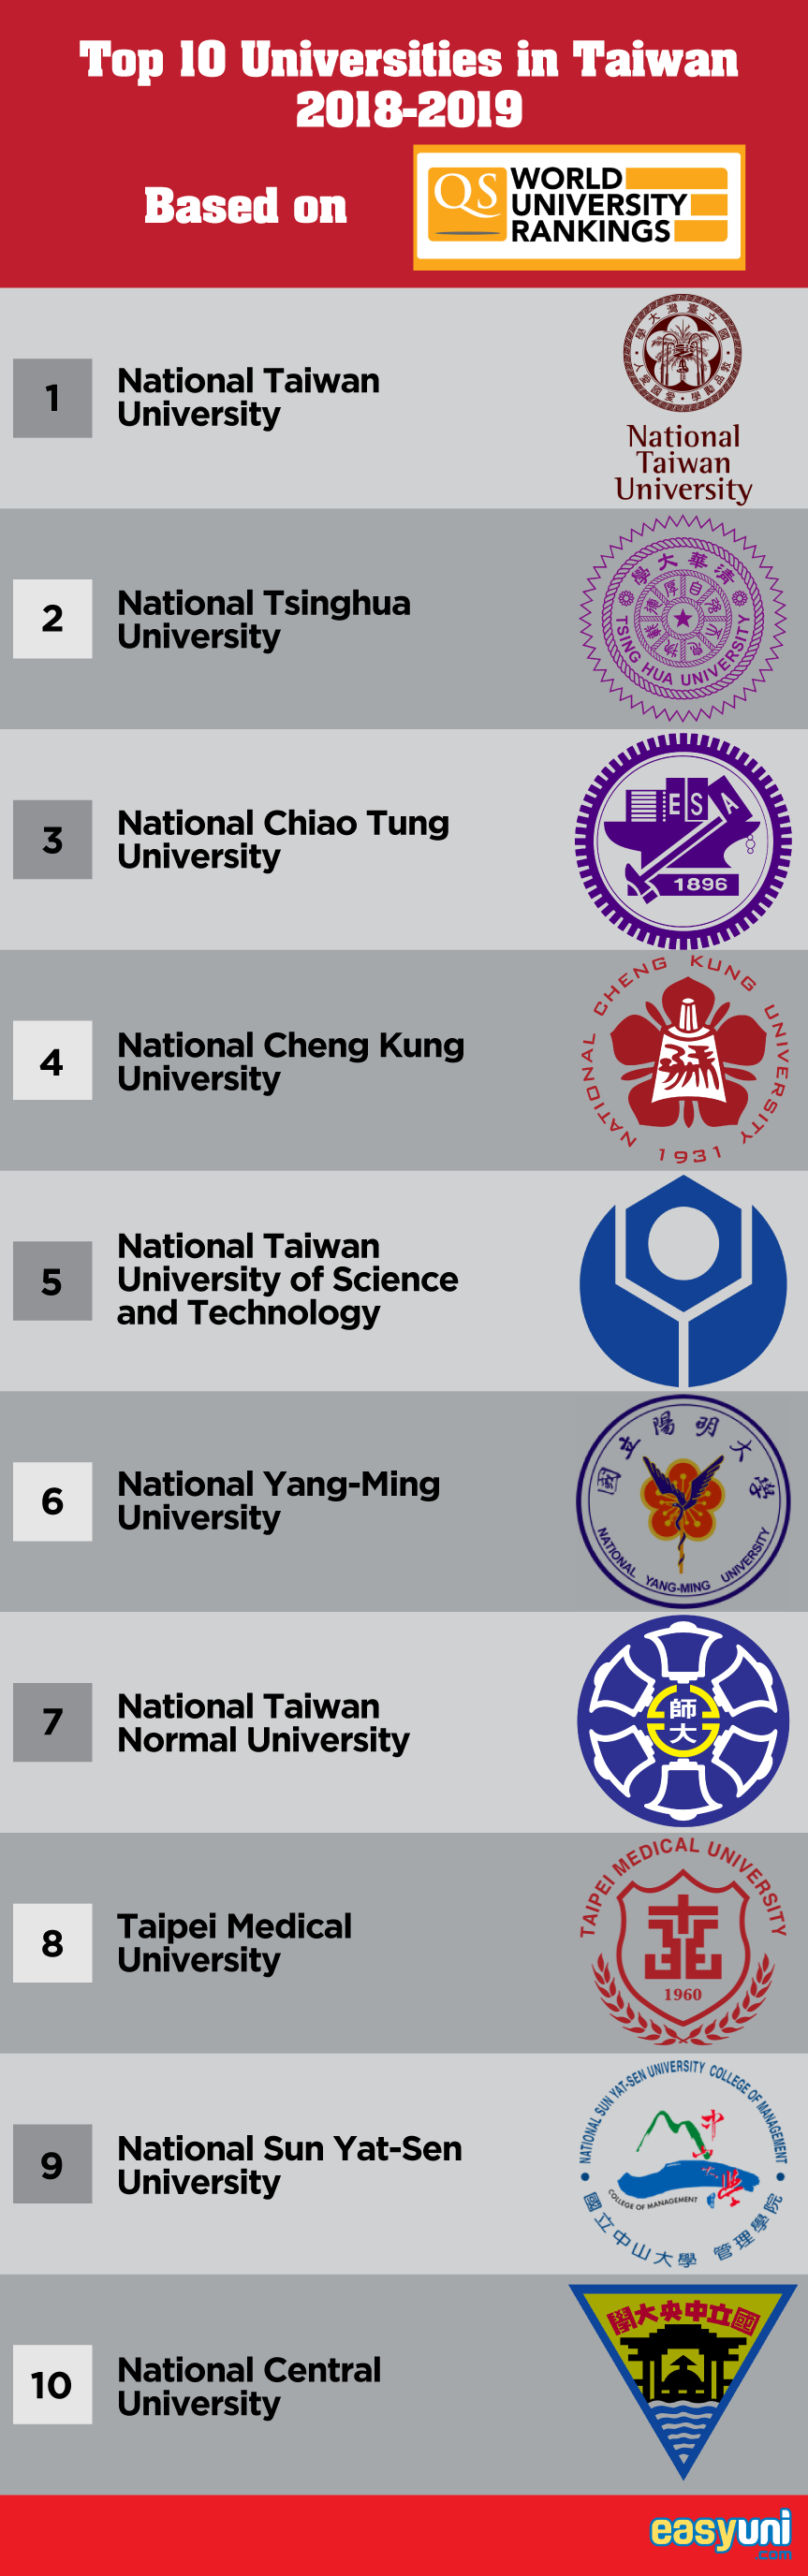 Top 10 Universities in Taiwan 2019